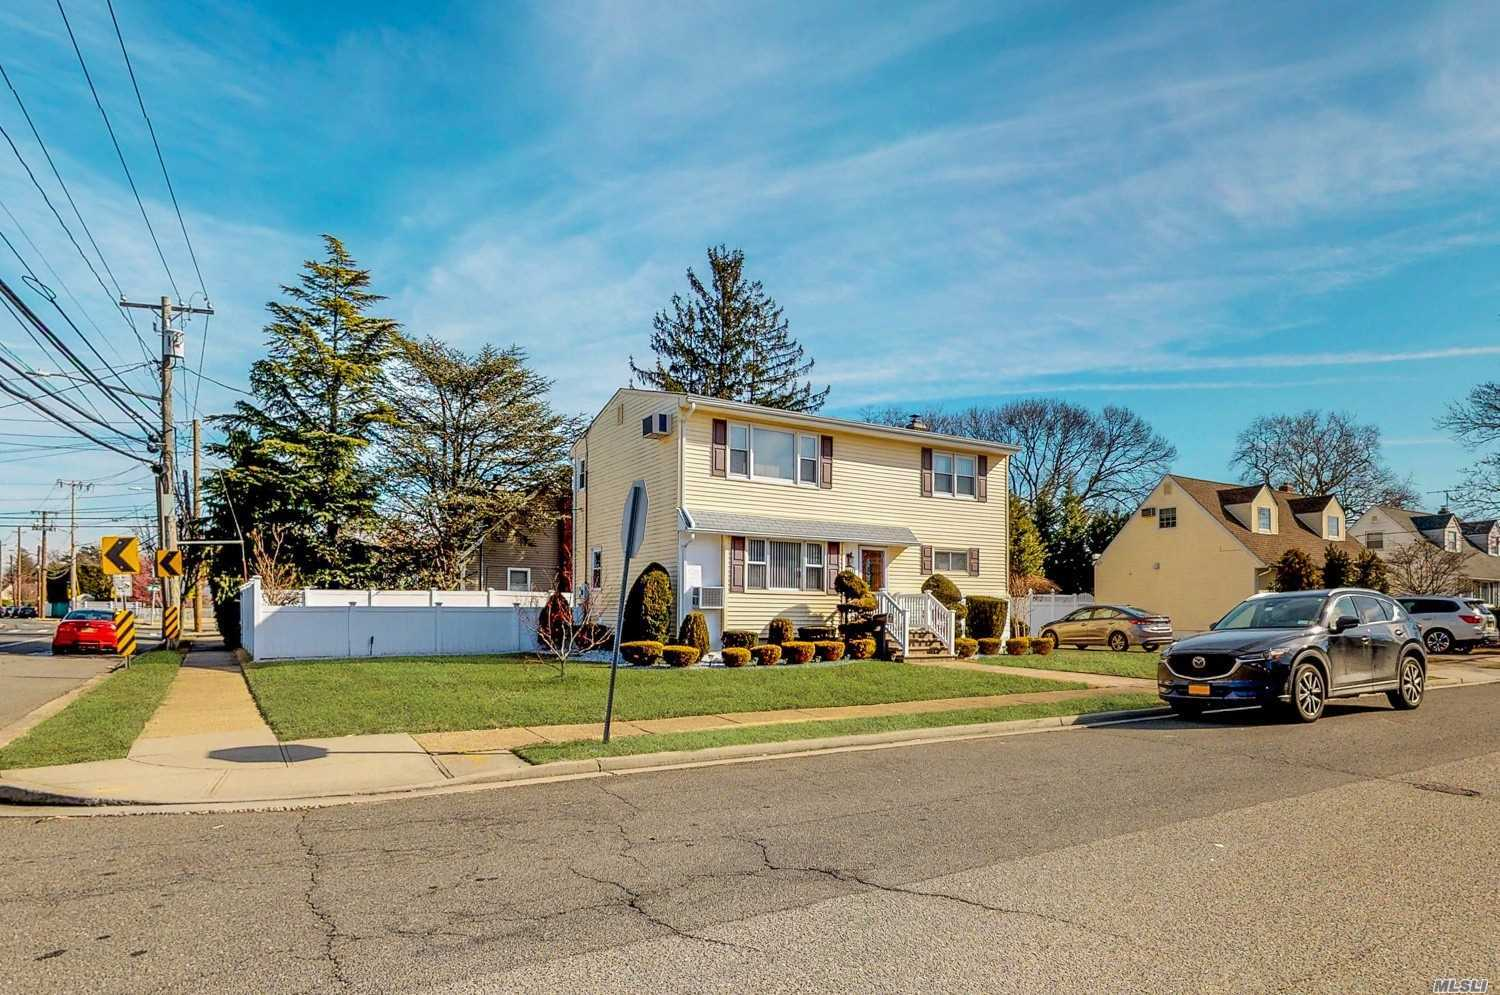 Fabulous Mint Condition Legal 2 Family Home In Desirable Oceanside! Move Right In! Large Yard Finished Basement And Garage. Low Taxes With Rental Potential! Must See Will Sell Fast!